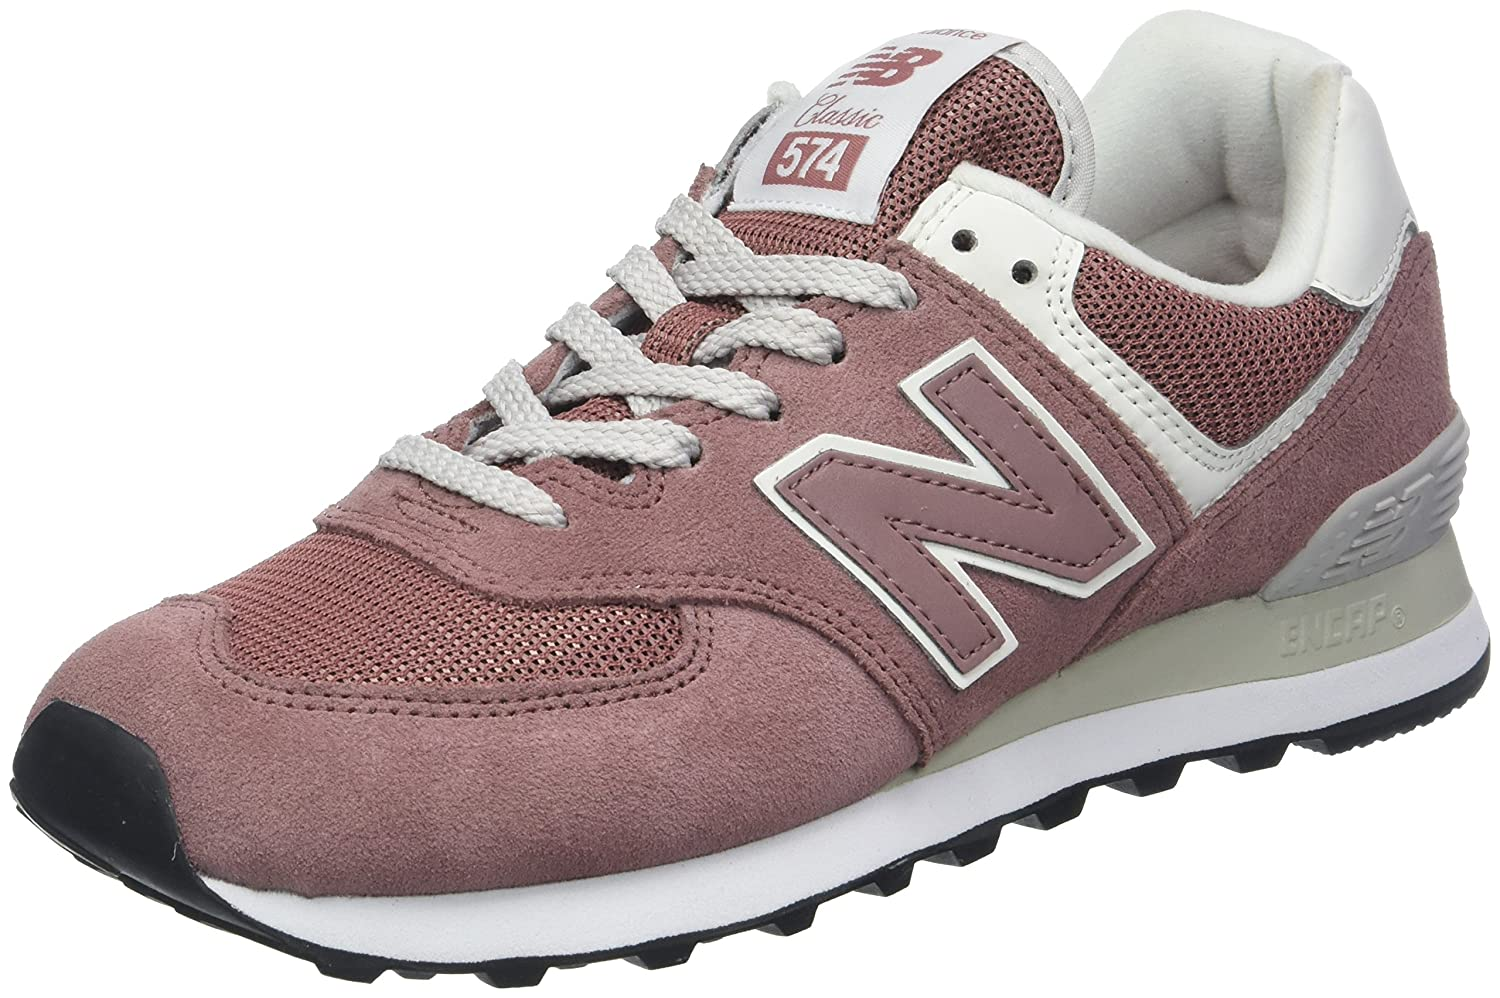 New Balance Wl574, Bottes Classiques Femme B0797FB2VR Orange Classiques Bottes (Dark Oxide/Dark Oxide Croc) 931567f - fast-weightloss-diet.space